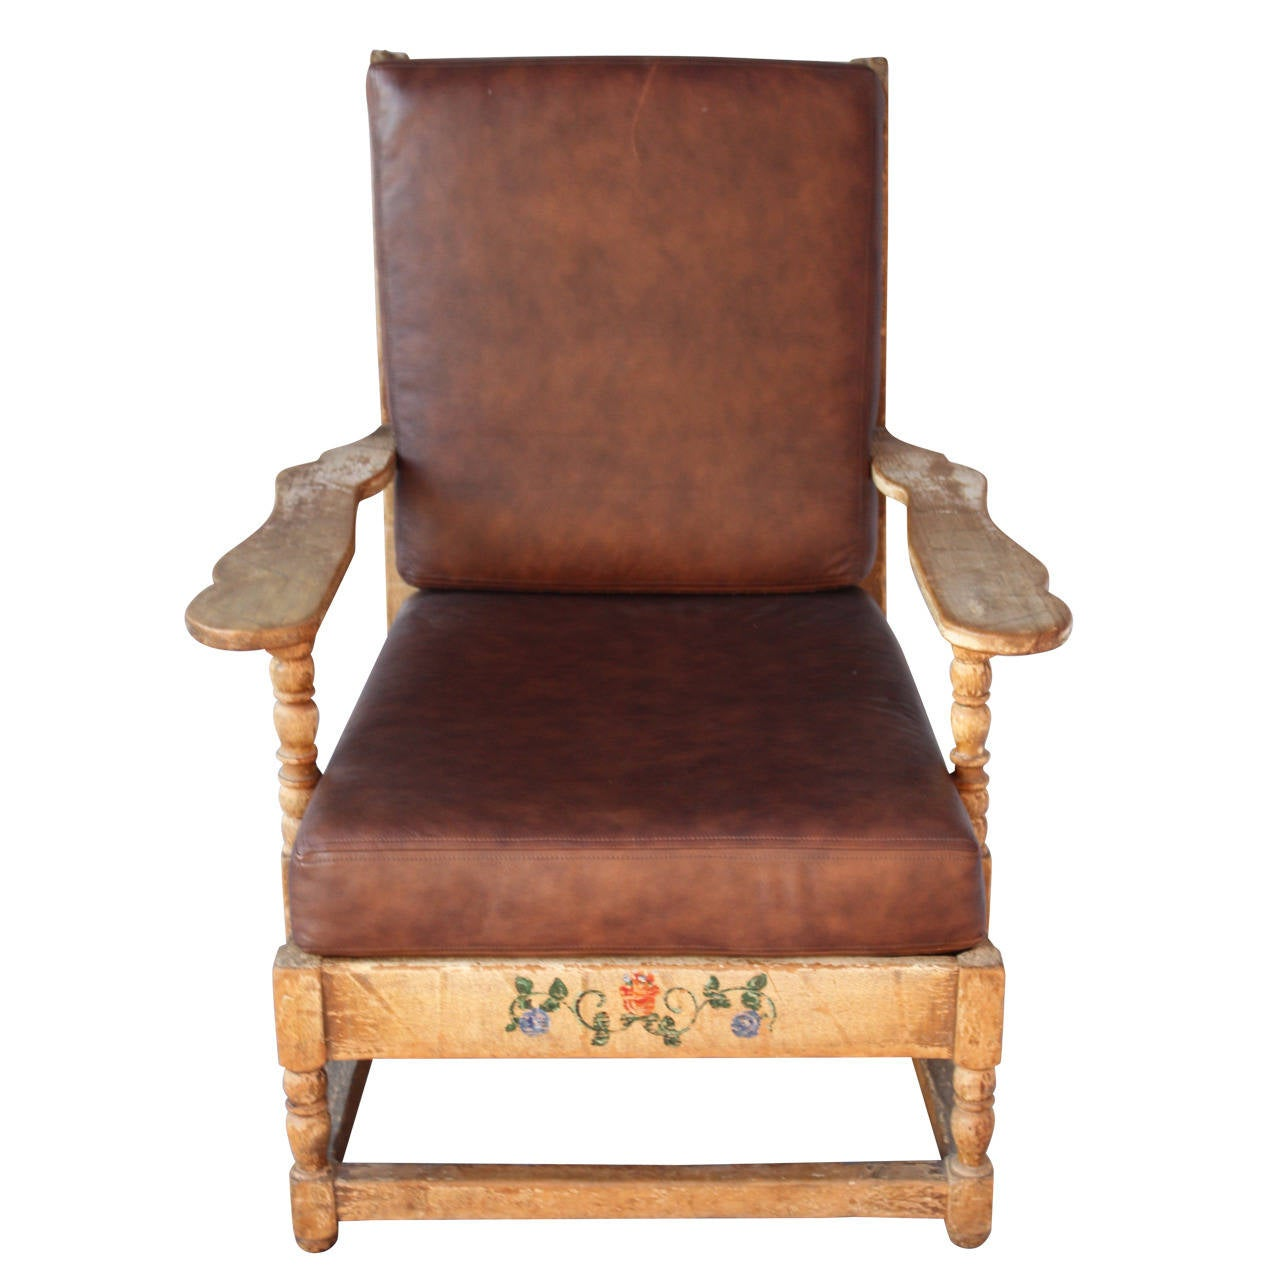 Large monterey armchair with leather seat for sale at 1stdibs for Oversized armchairs for sale